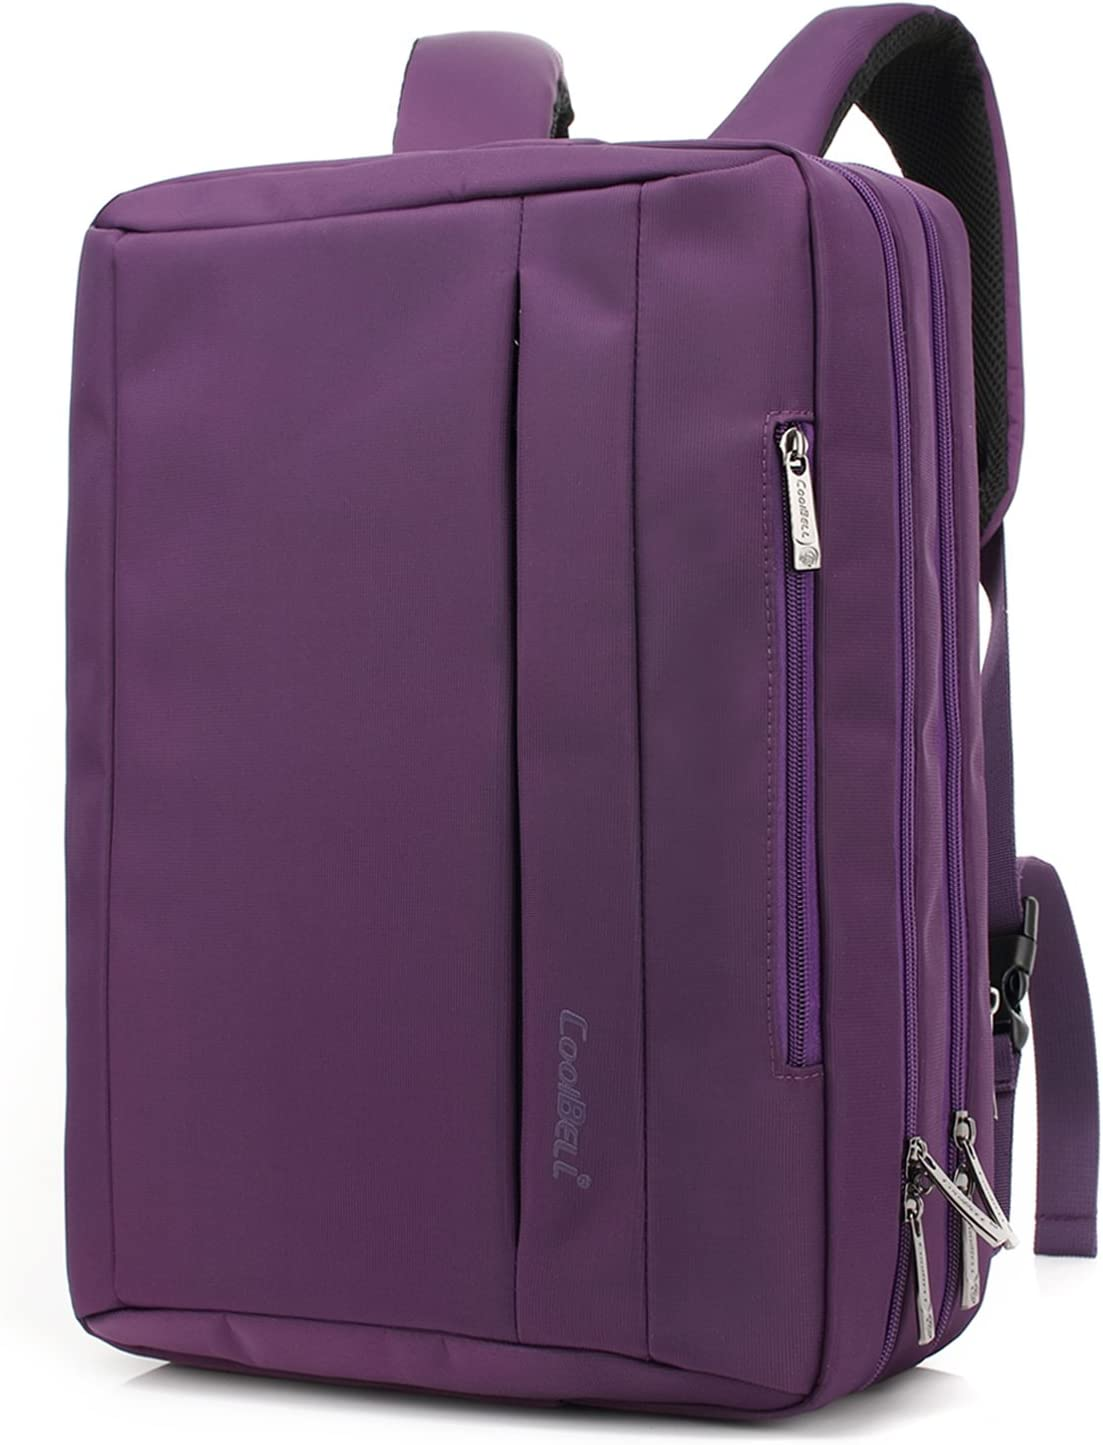 CoolBELL 15.6 Inches Convertible Laptop Messenger Bag Oxford Cloth Shoulder Bag Backpack Multi-Functional Briefcase for Laptop/MacBook/Tablet Women (Purple)